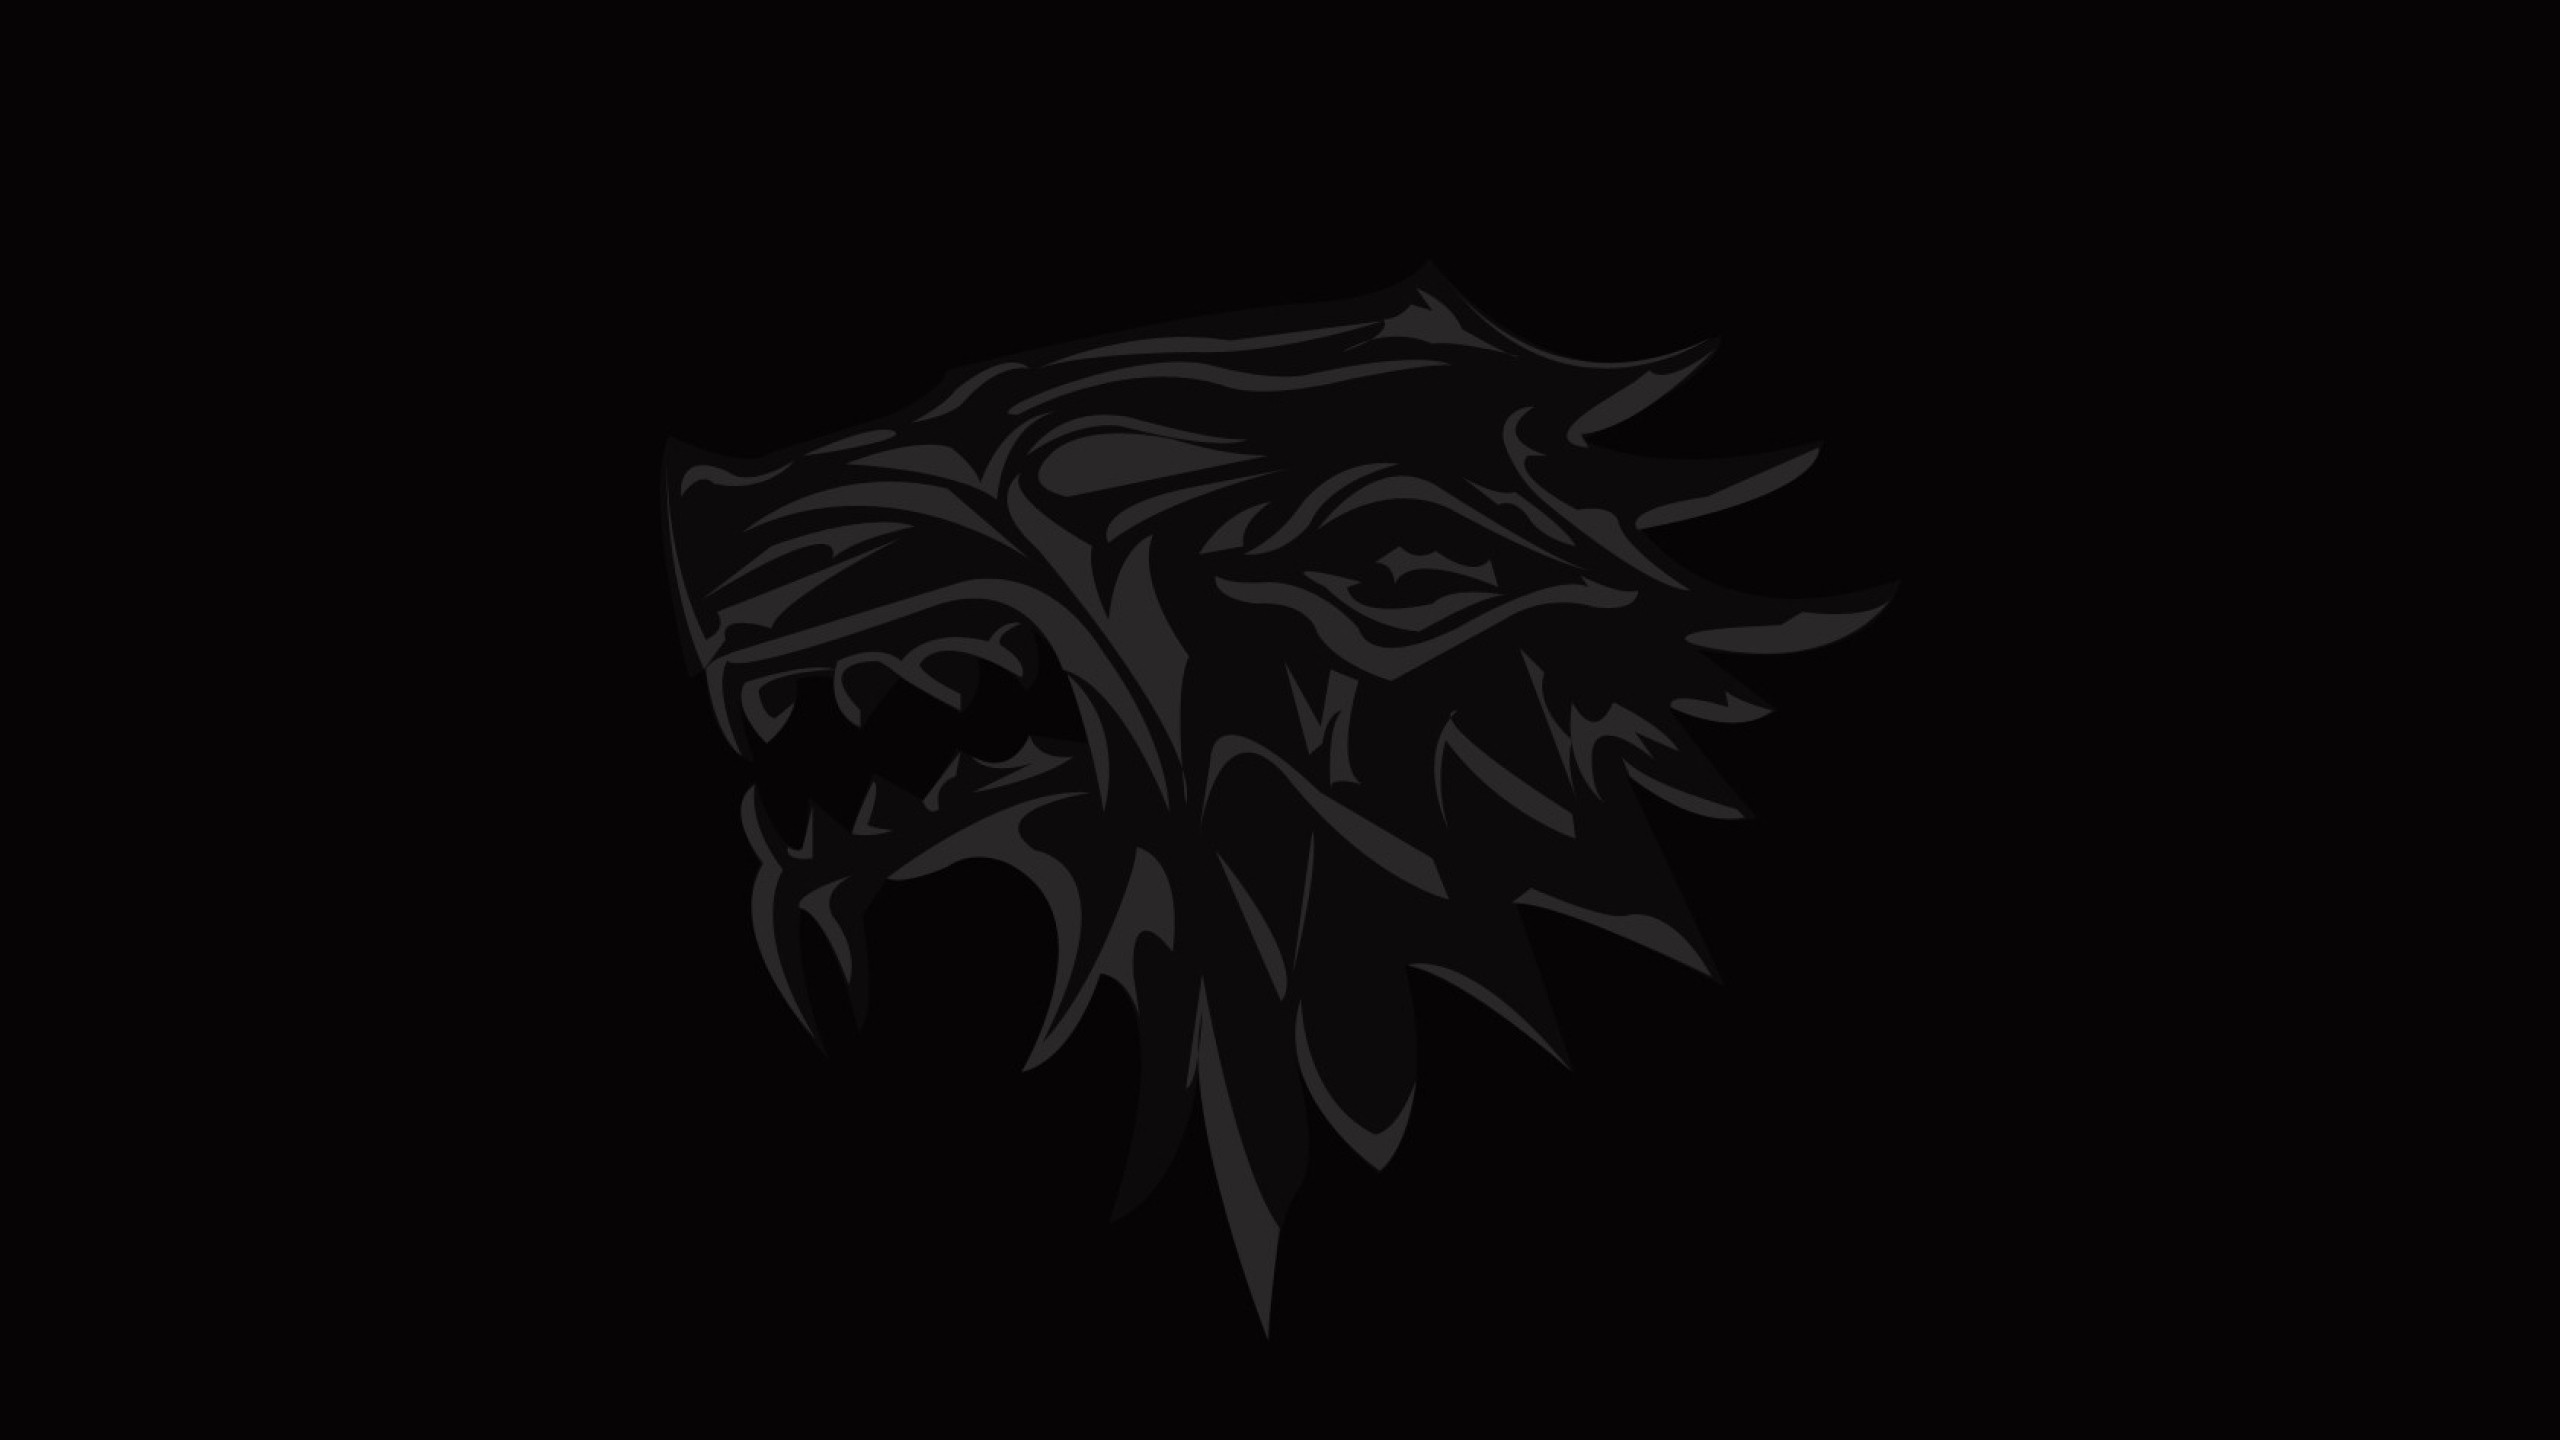 2560x1440  Wallpaper house of stark, game of thrones, logo, emblem, wolf